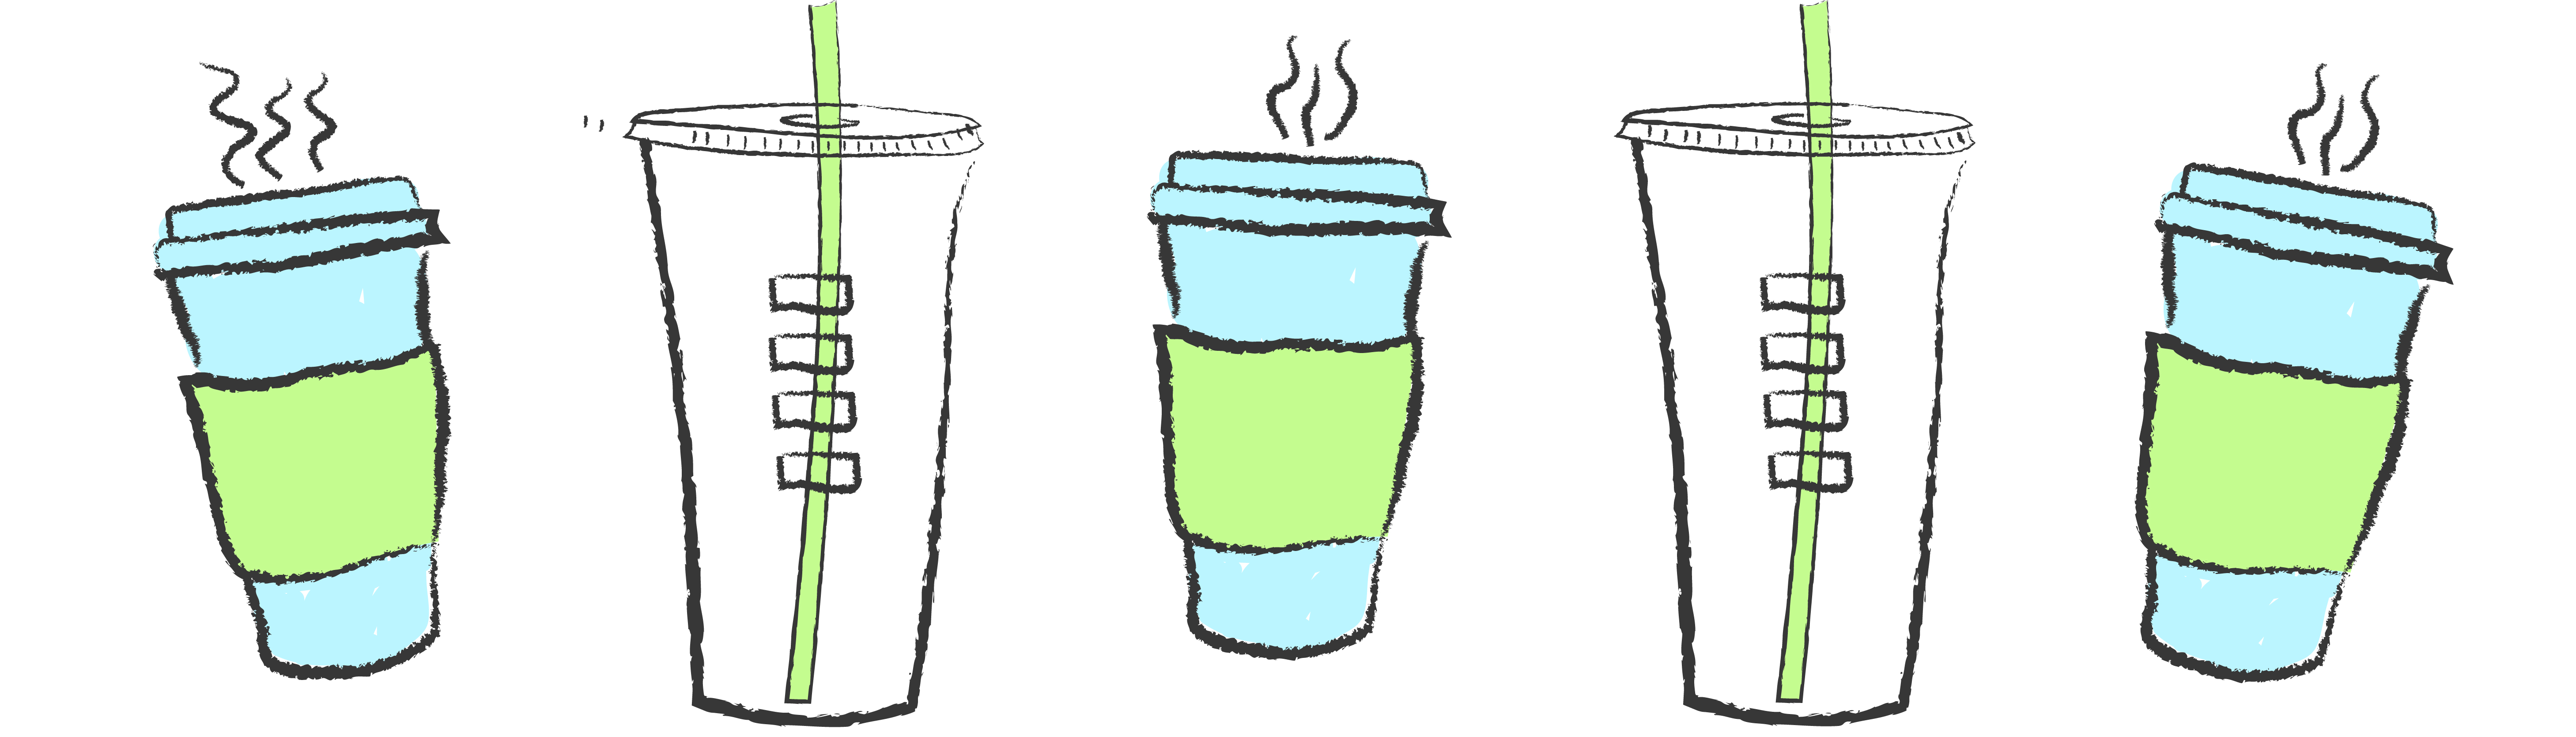 Starbucks cup header recycling